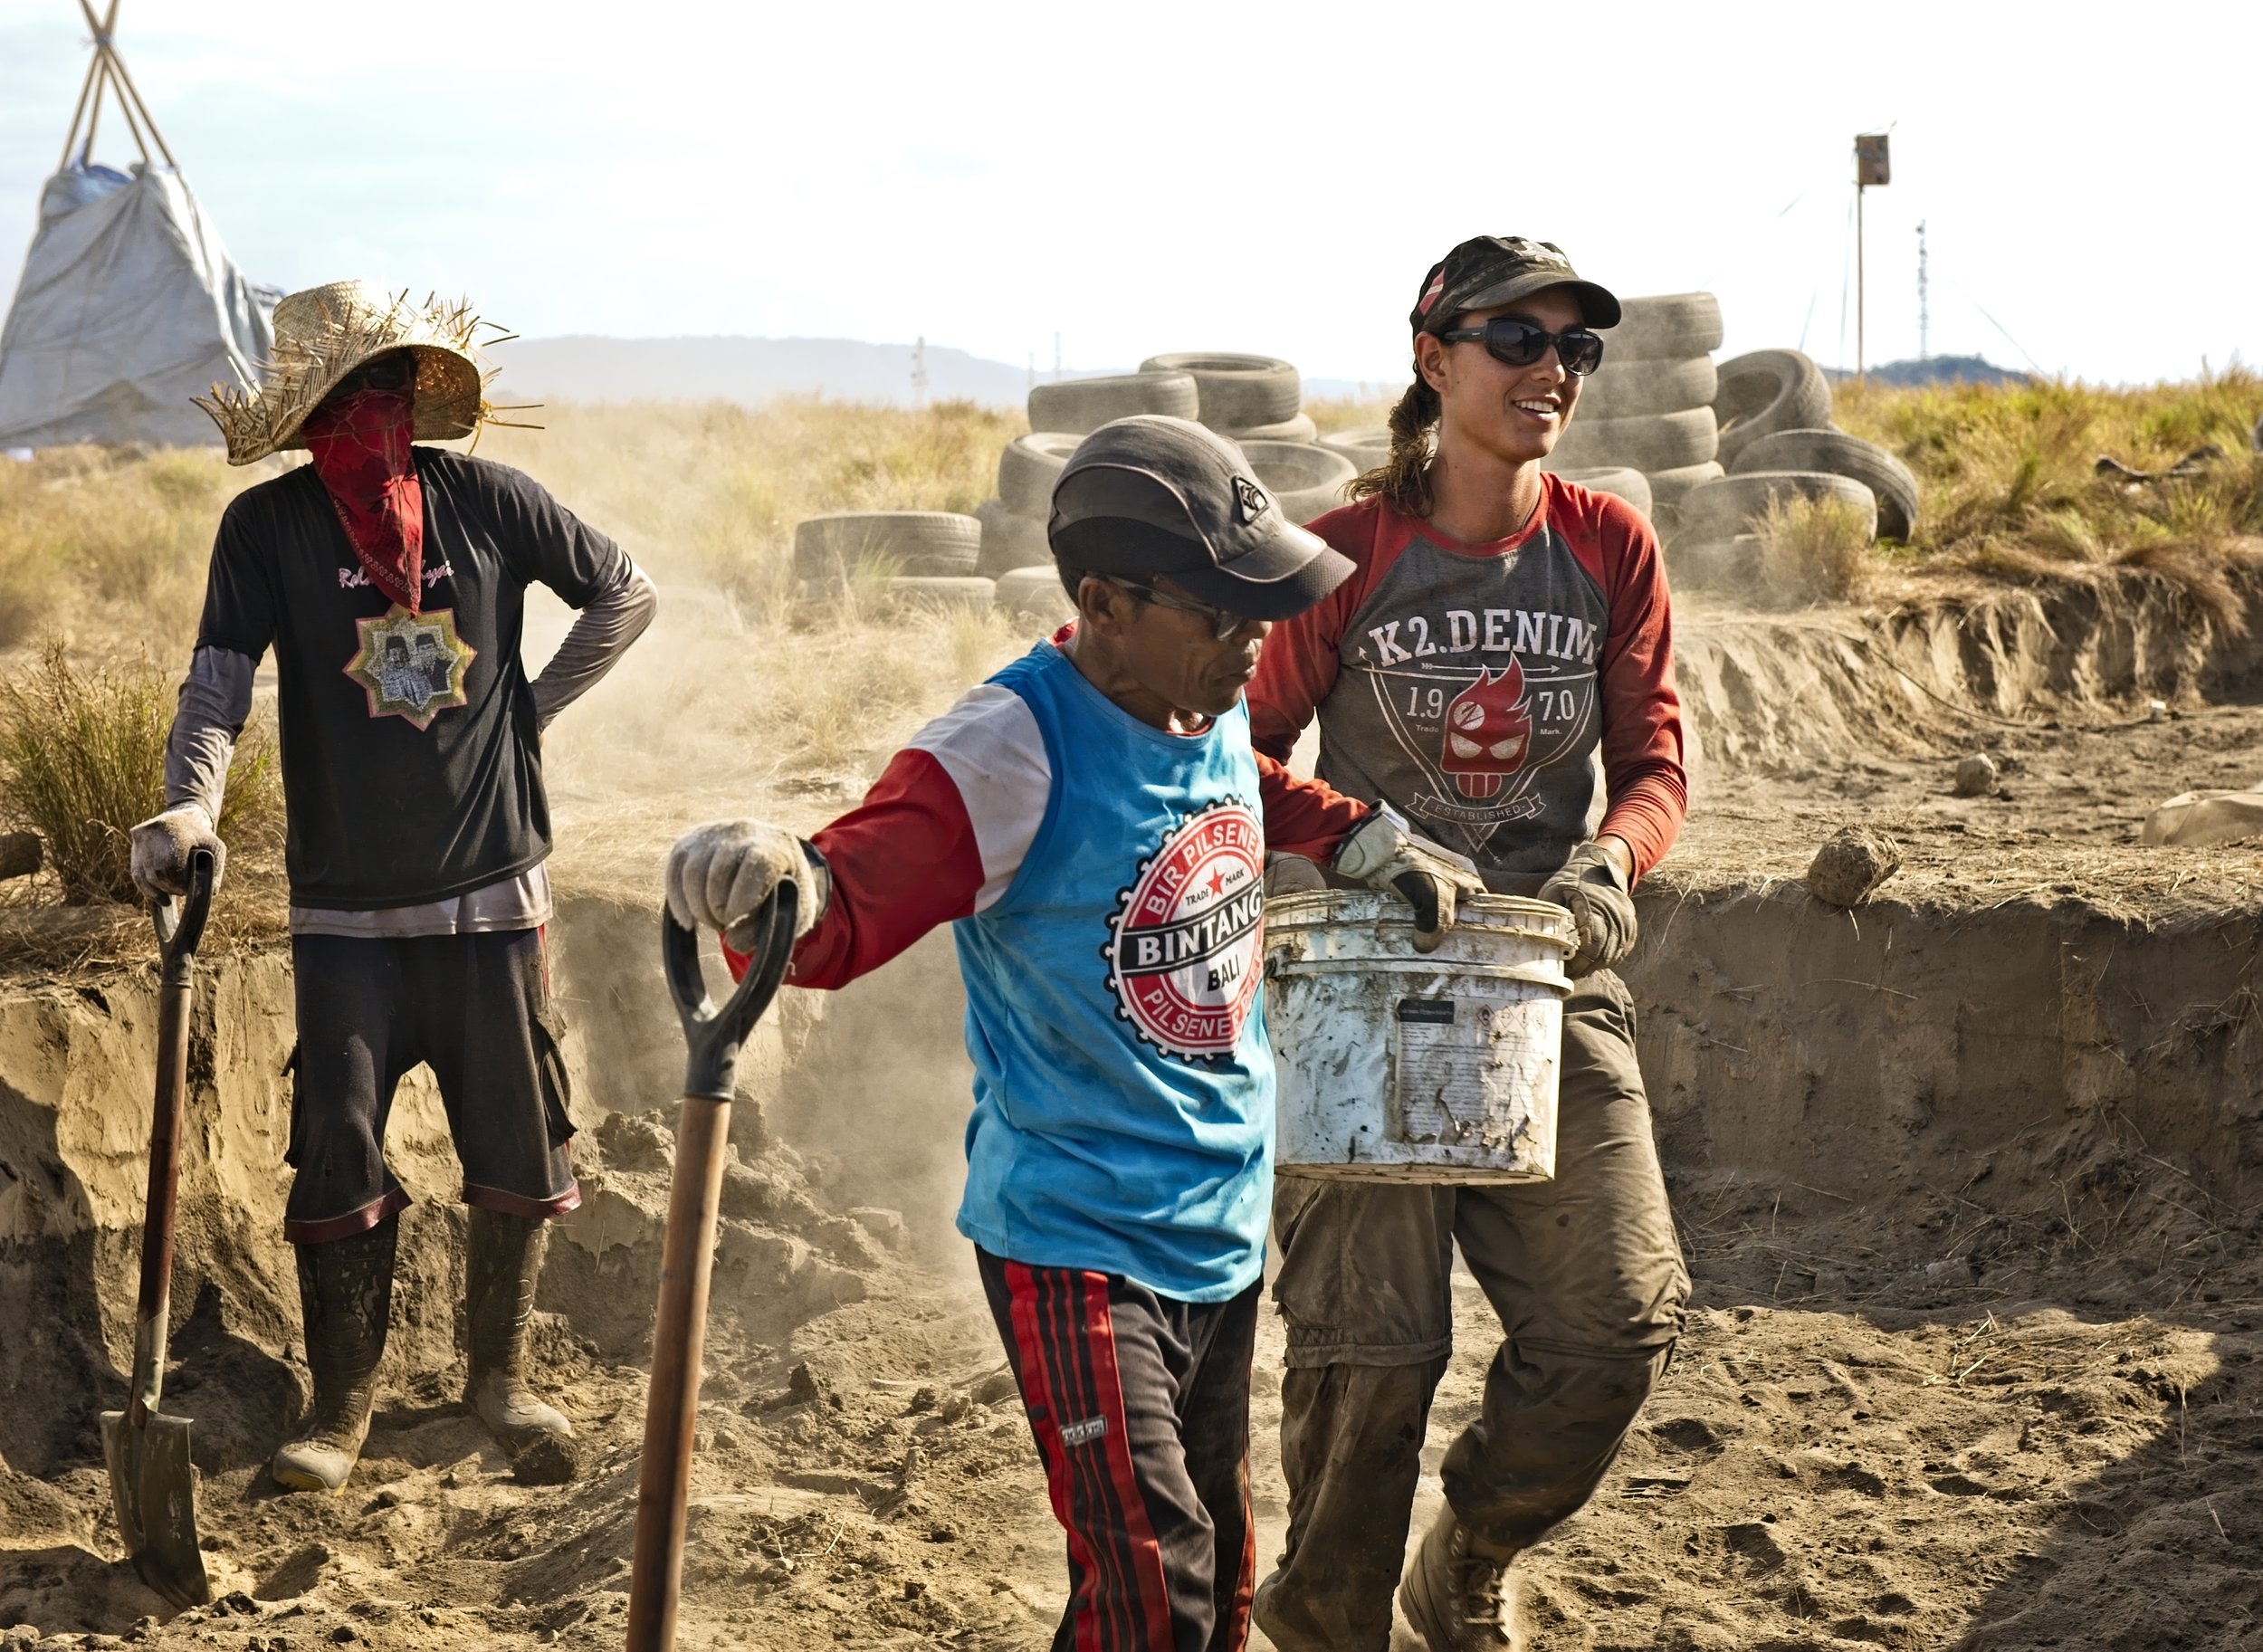 - In addition to the volunteering team, we had several local guys helping us with the project and learning about earthships...